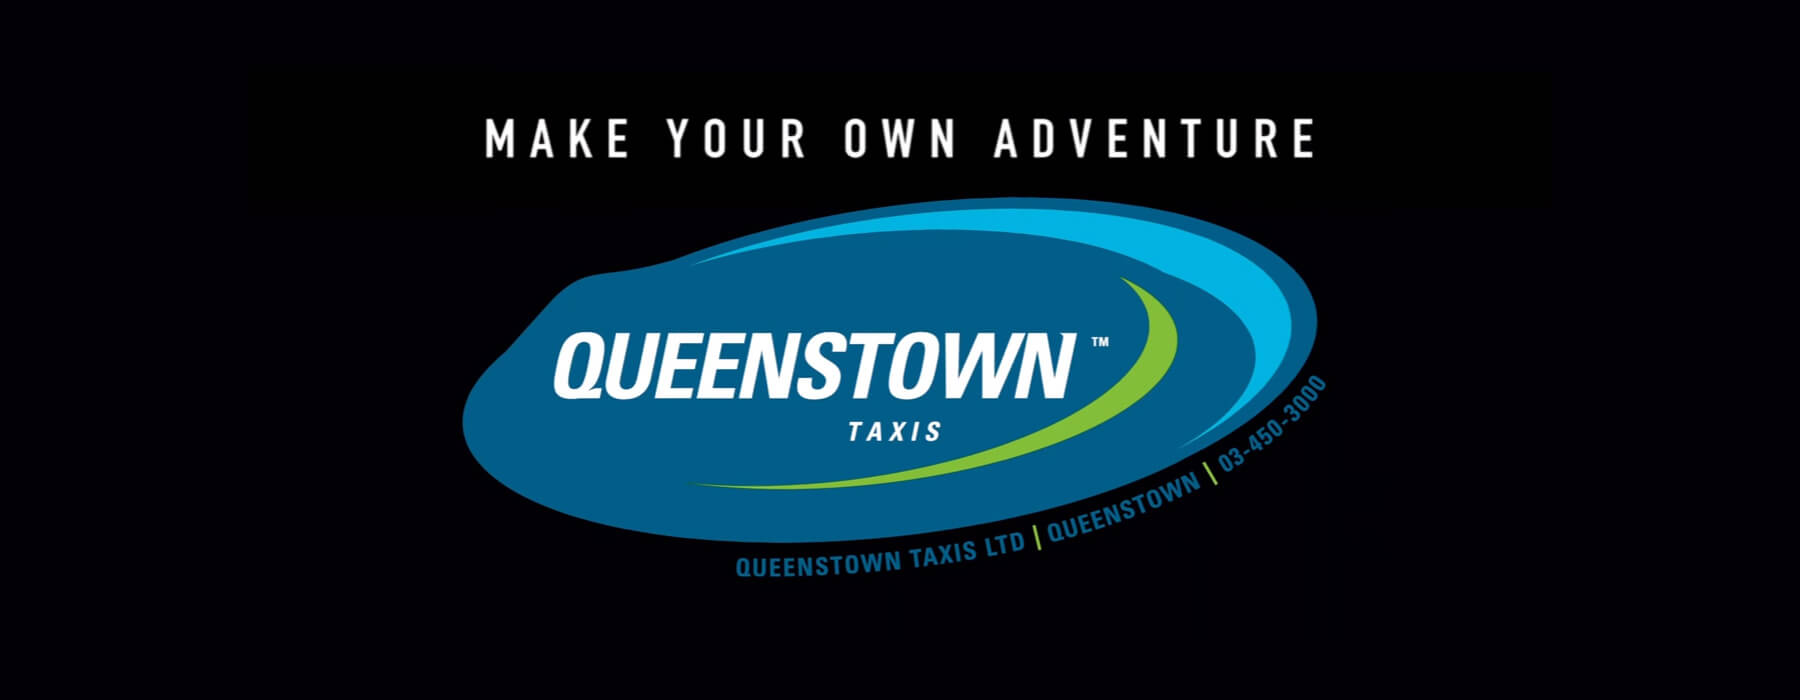 Queenstown Blue Bubble Taxis - App Booking Services Queenstown